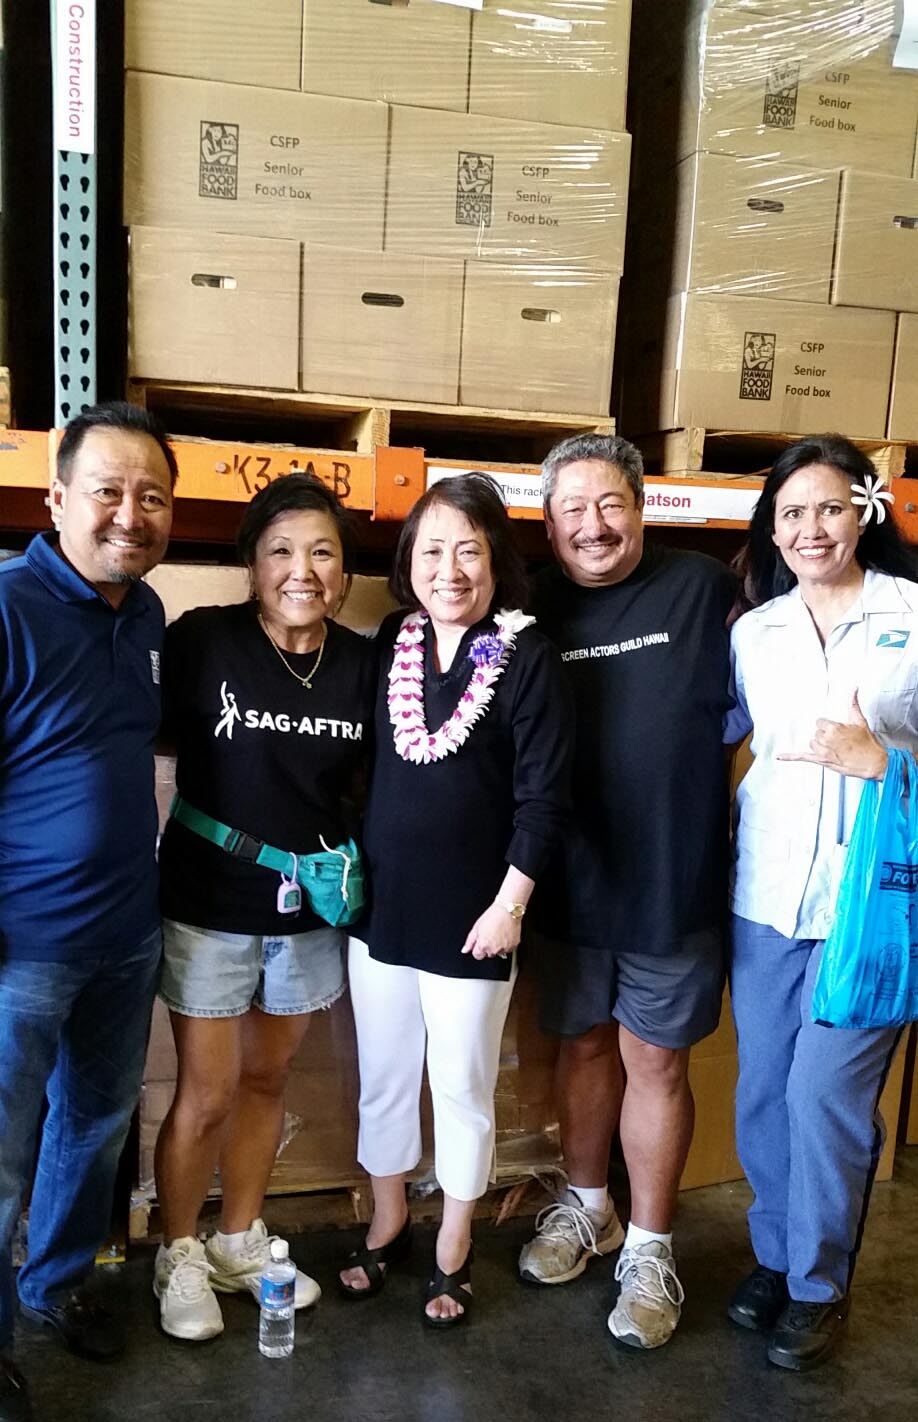 Leanne Teves with Rep. Colleen Hanabusa